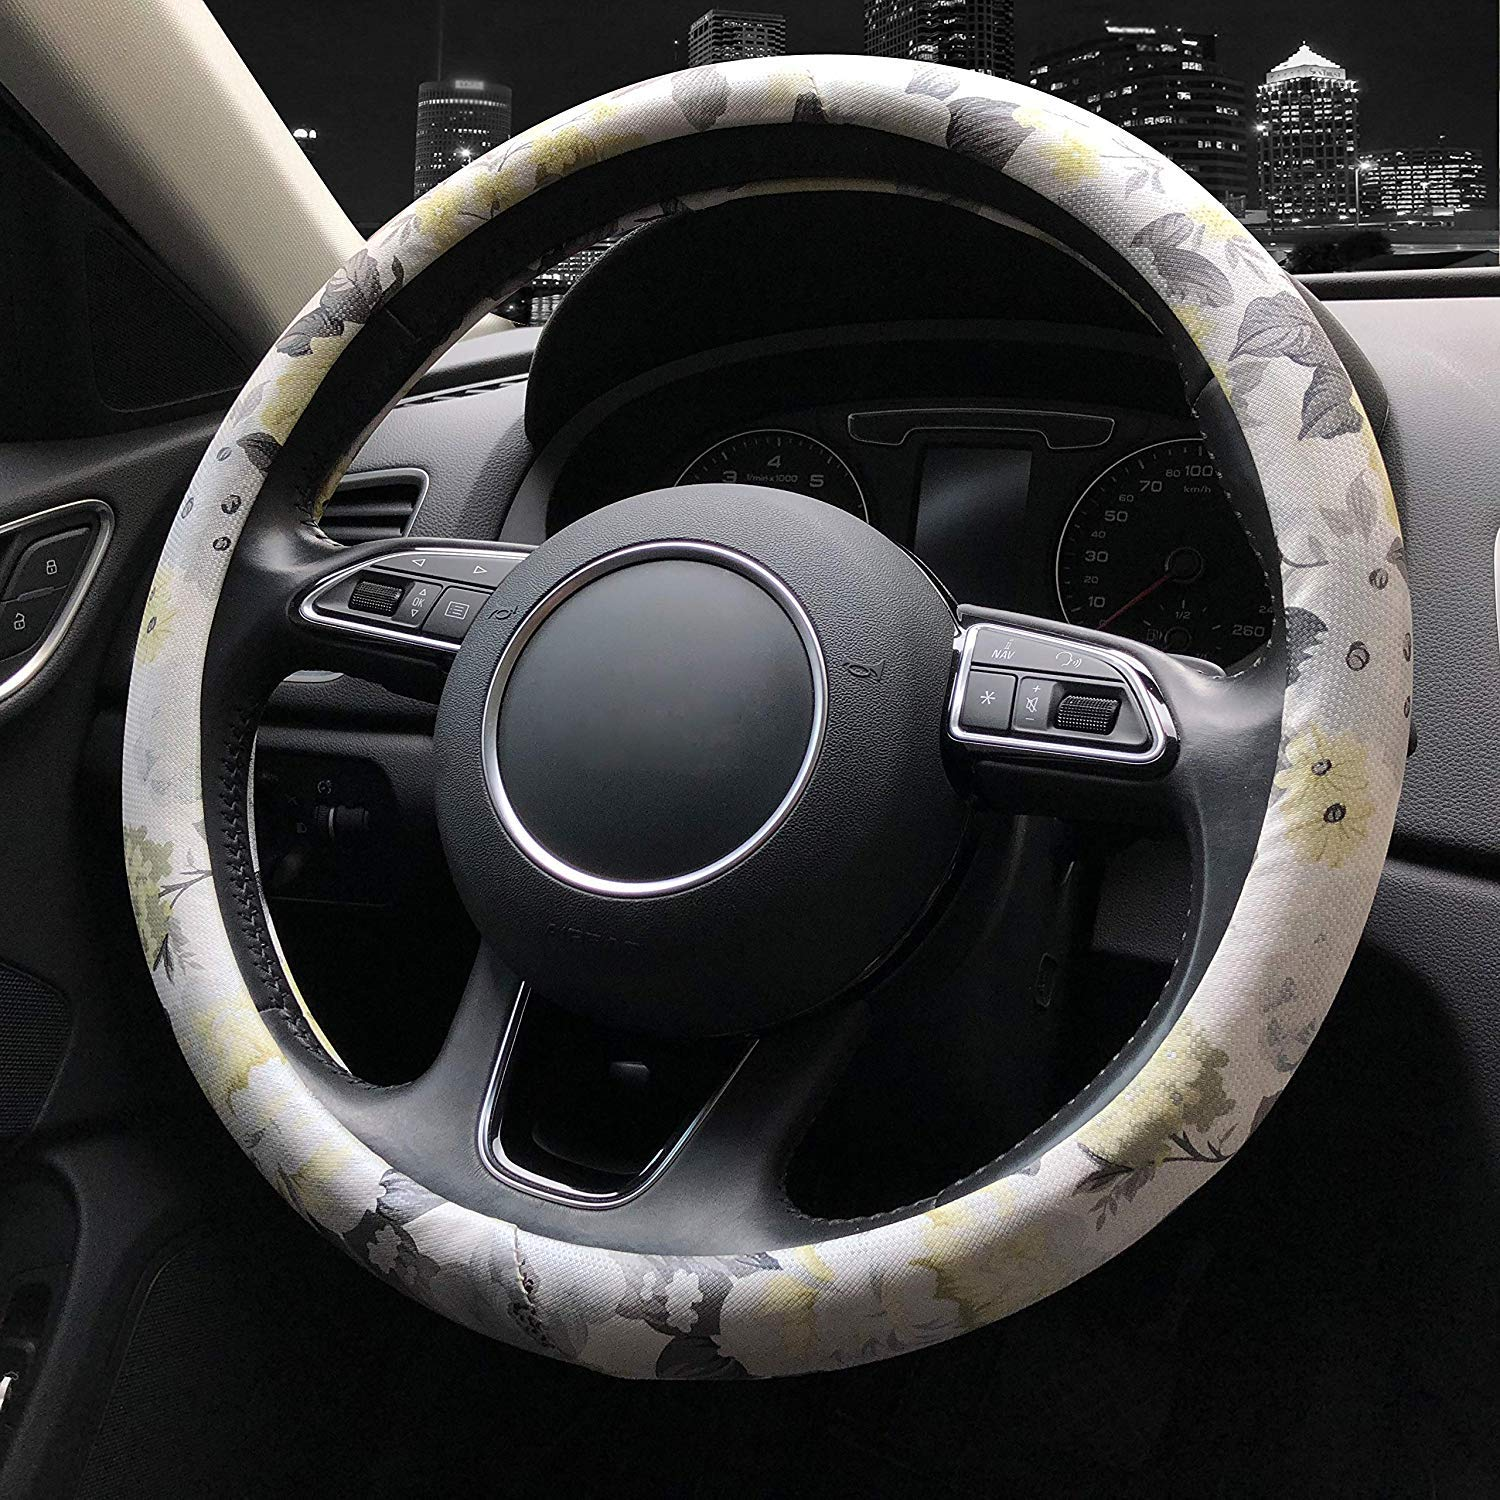 Bronkey Car Steering Wheel Cover for Women 15 Ethnic Style F Anti Slip PU Leather Wheel Covers